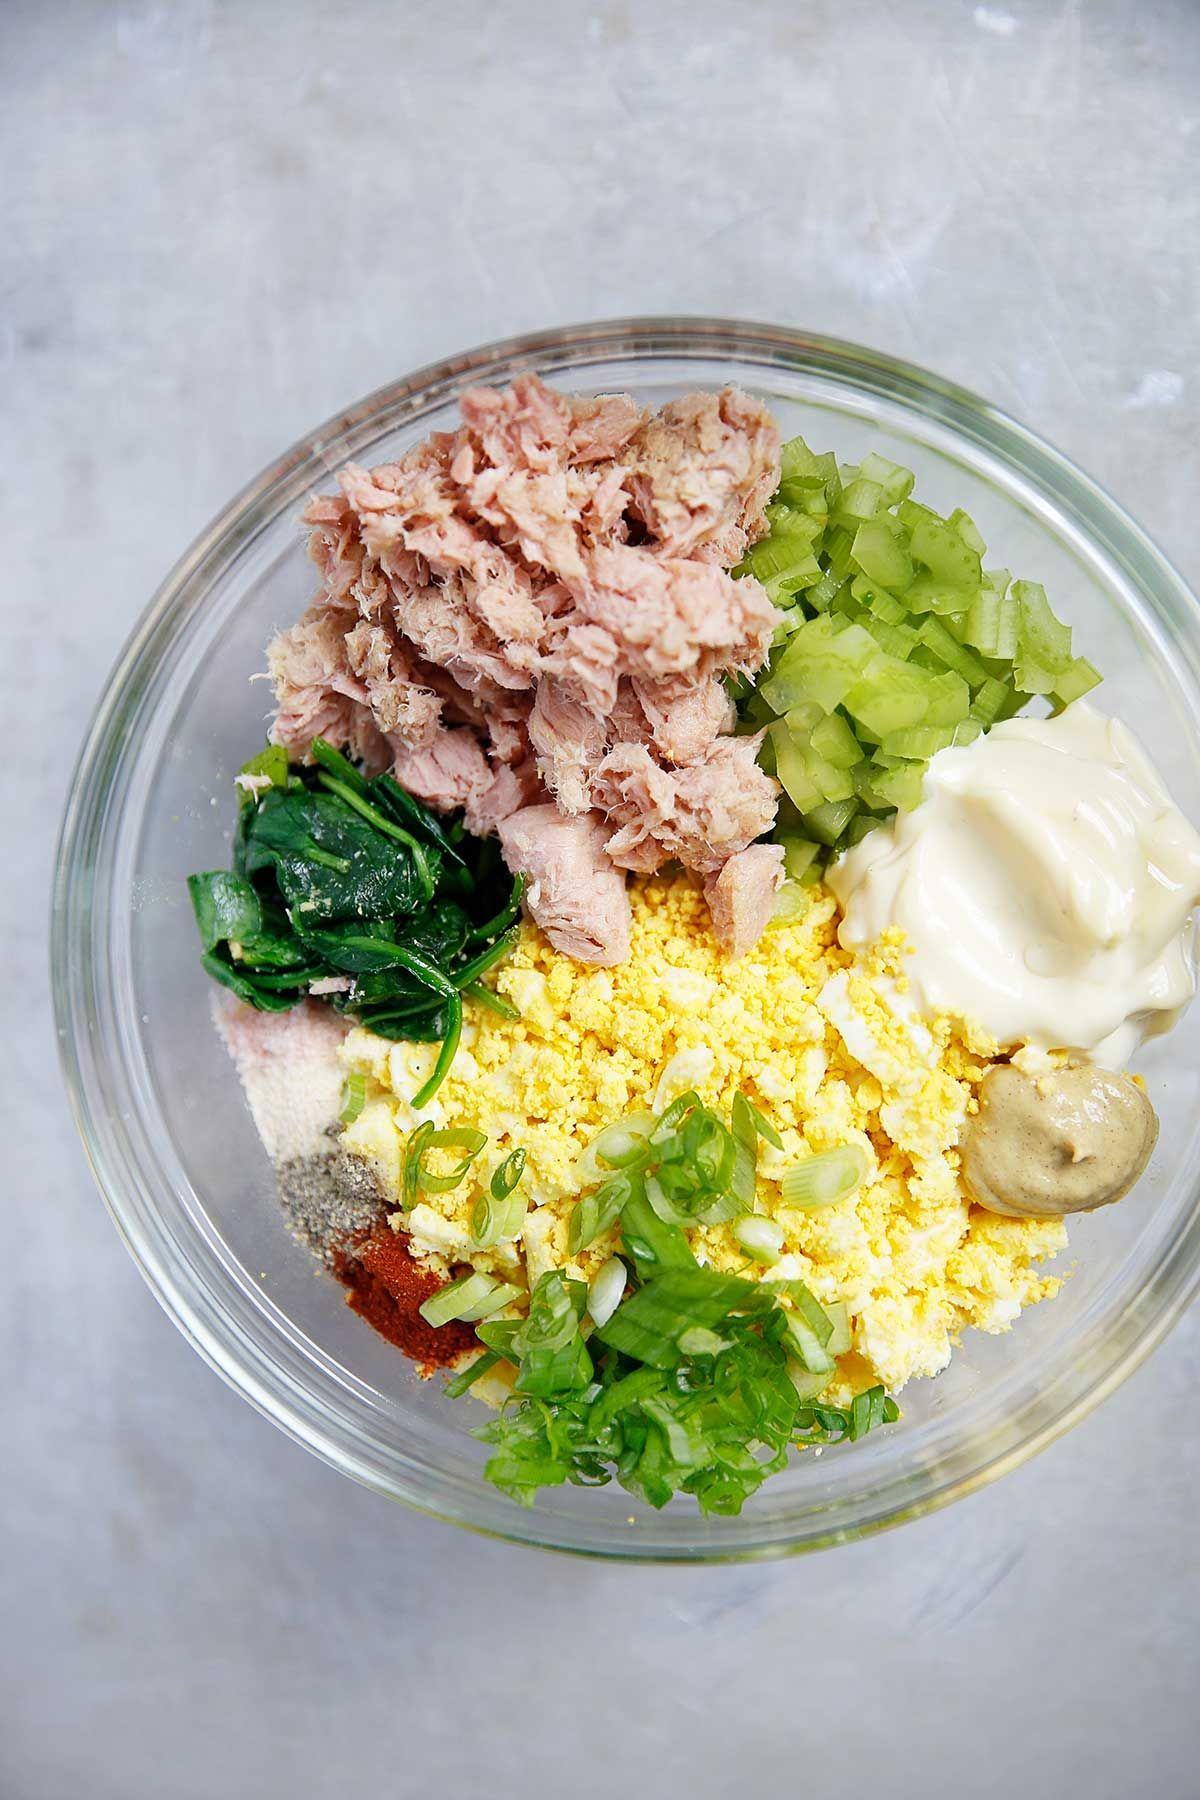 Loaded Egg Salad With Tuna Spring Recipes Seafood Delicious Yum Easyrecipe Good Healthy Recipes Healthy Diet Recipes Healthy Food Facts